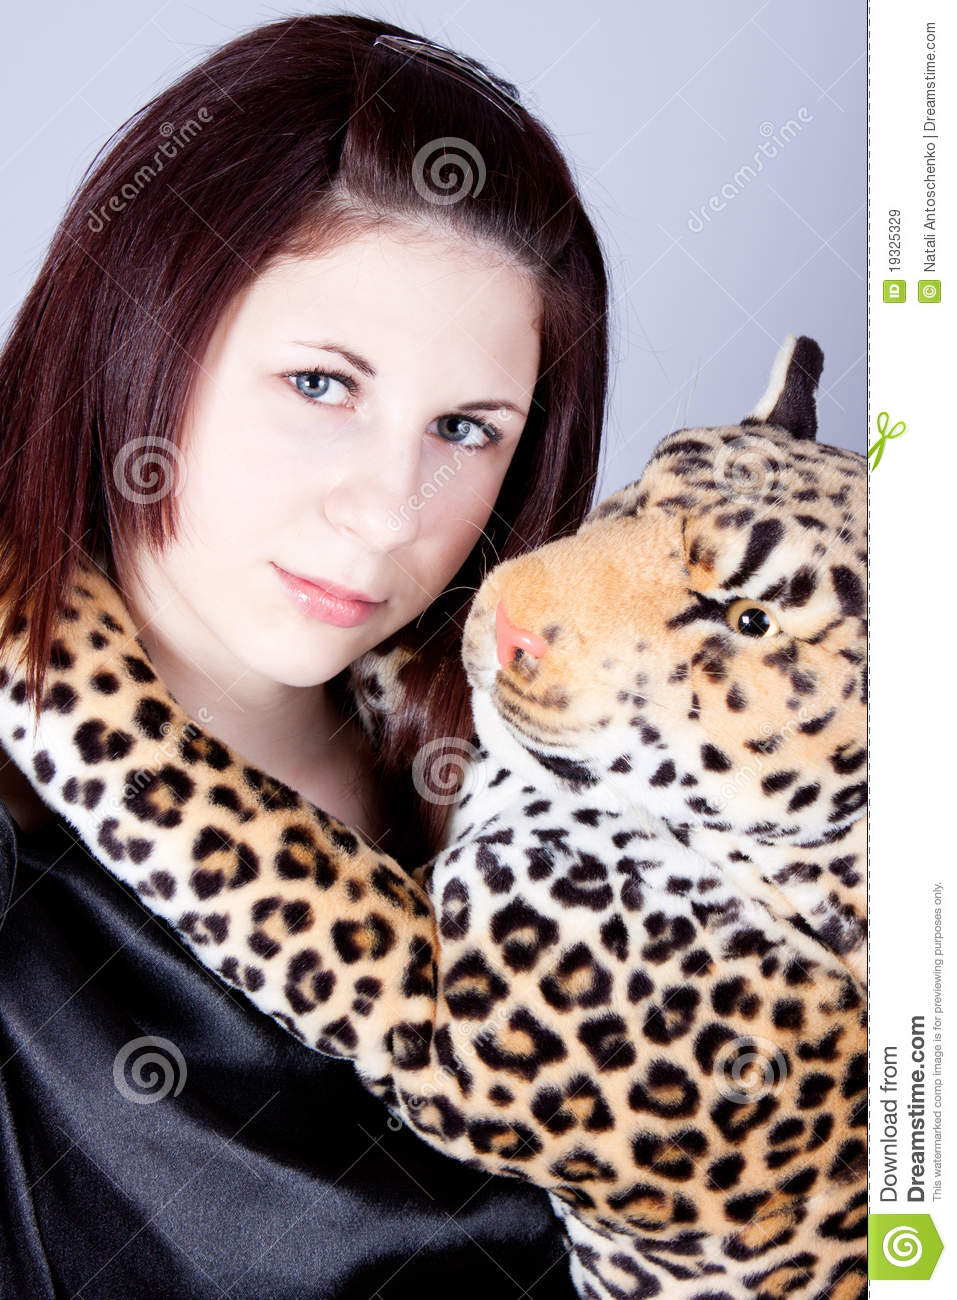 Gril Toy For Teenager : Girl the teenager with a toy panther royalty free stock